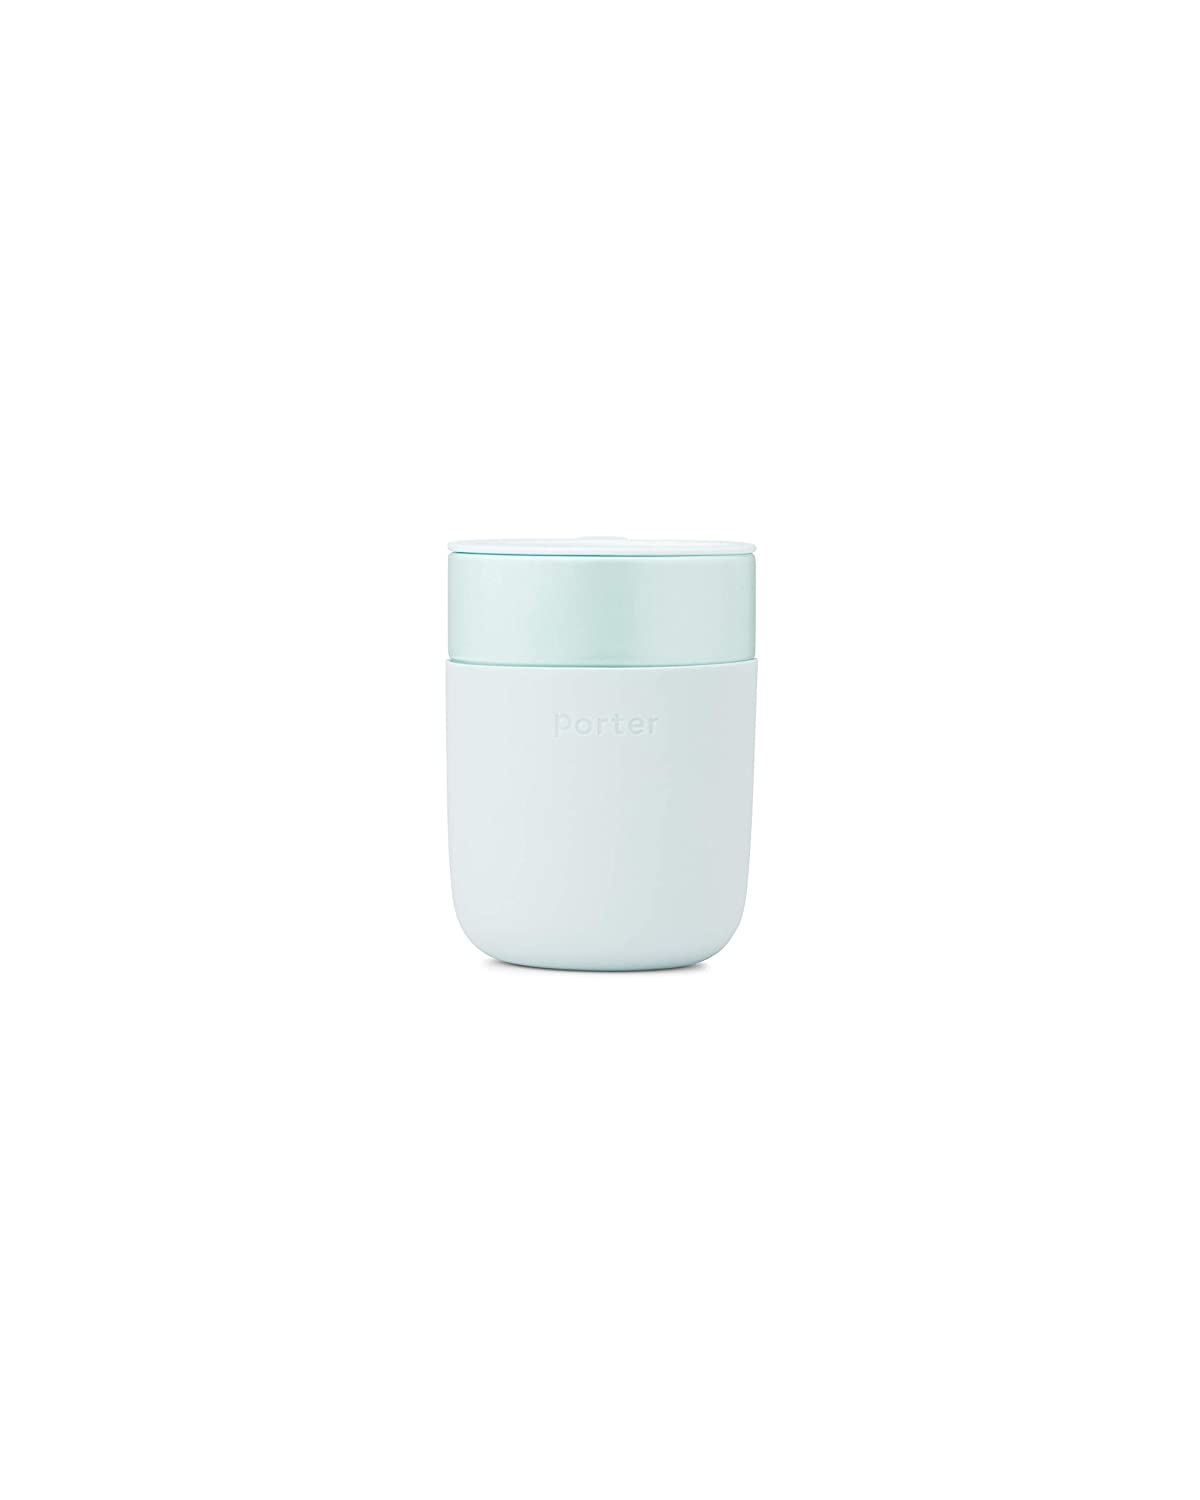 W&P Porter Ceramic Mug w/ Protective Silicone Sleeve, Mint 12 Ounces | On-the-Go | No Seal Tight | Reusable Cup for Coffee or Tea | Portable | Dishwasher Safe